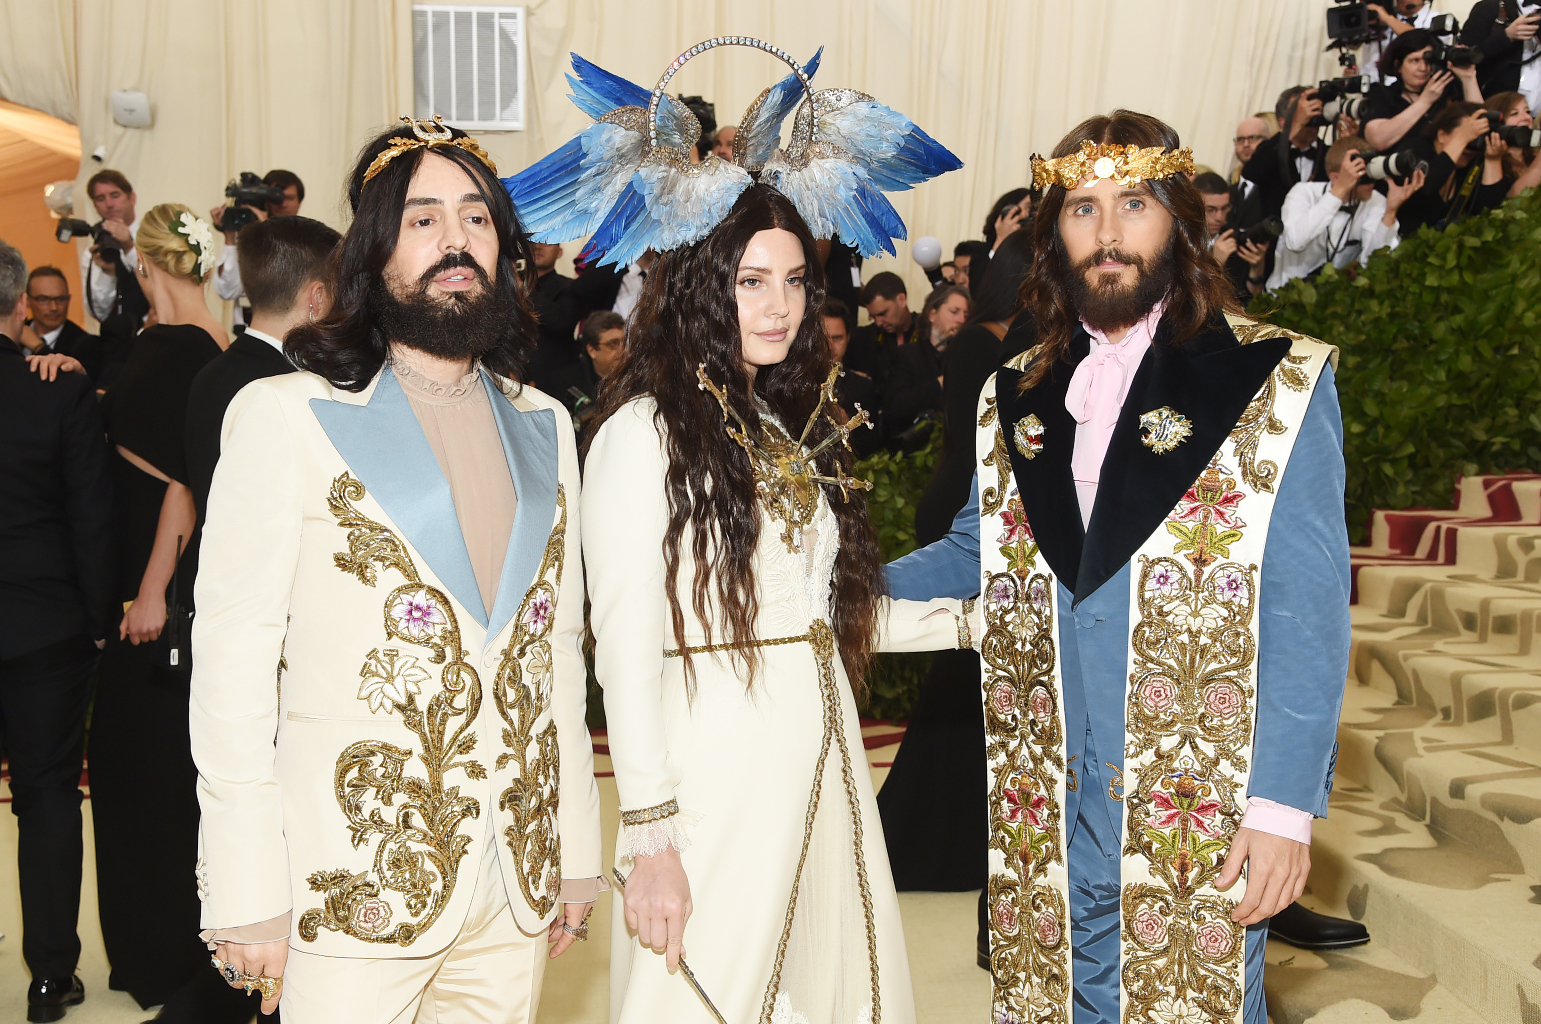 NEW YORK, NY - MAY 07:  Alessandro Michele, Lana Del Rey and Jared Leto attend the Heavenly Bodies: Fashion & The Catholic Imagination Costume Institute Gala at The Metropolitan Museum of Art on May 7, 2018 in New York City.  (Photo by Jamie McCarthy/Getty Images)